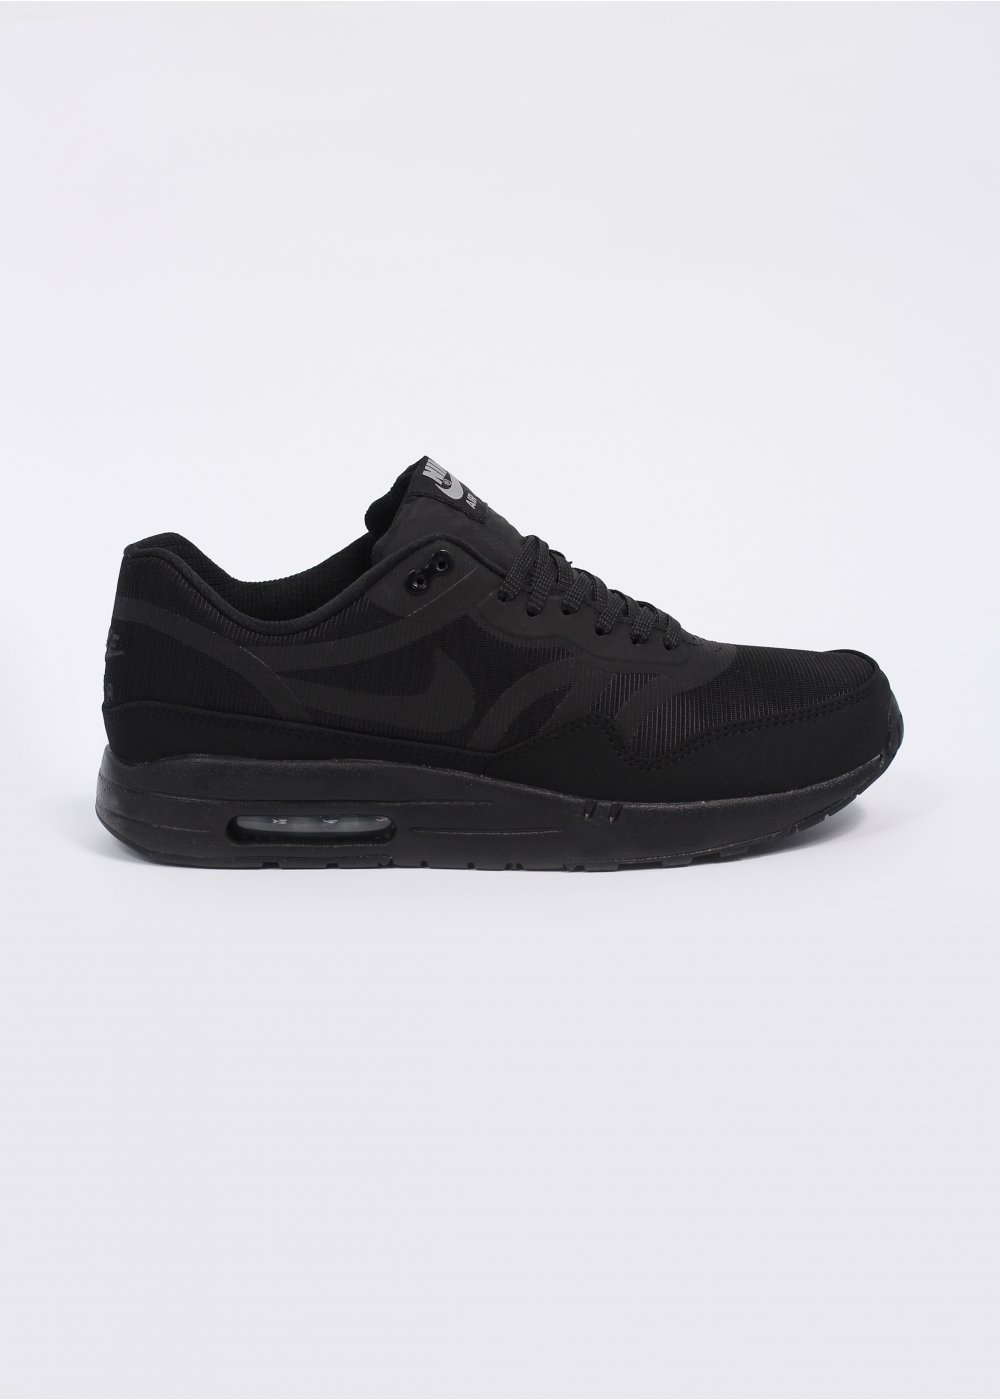 Nike Air Max 1 Premium Tape  Reflective Pack  Trainers - All Black 1b2c7d1e6